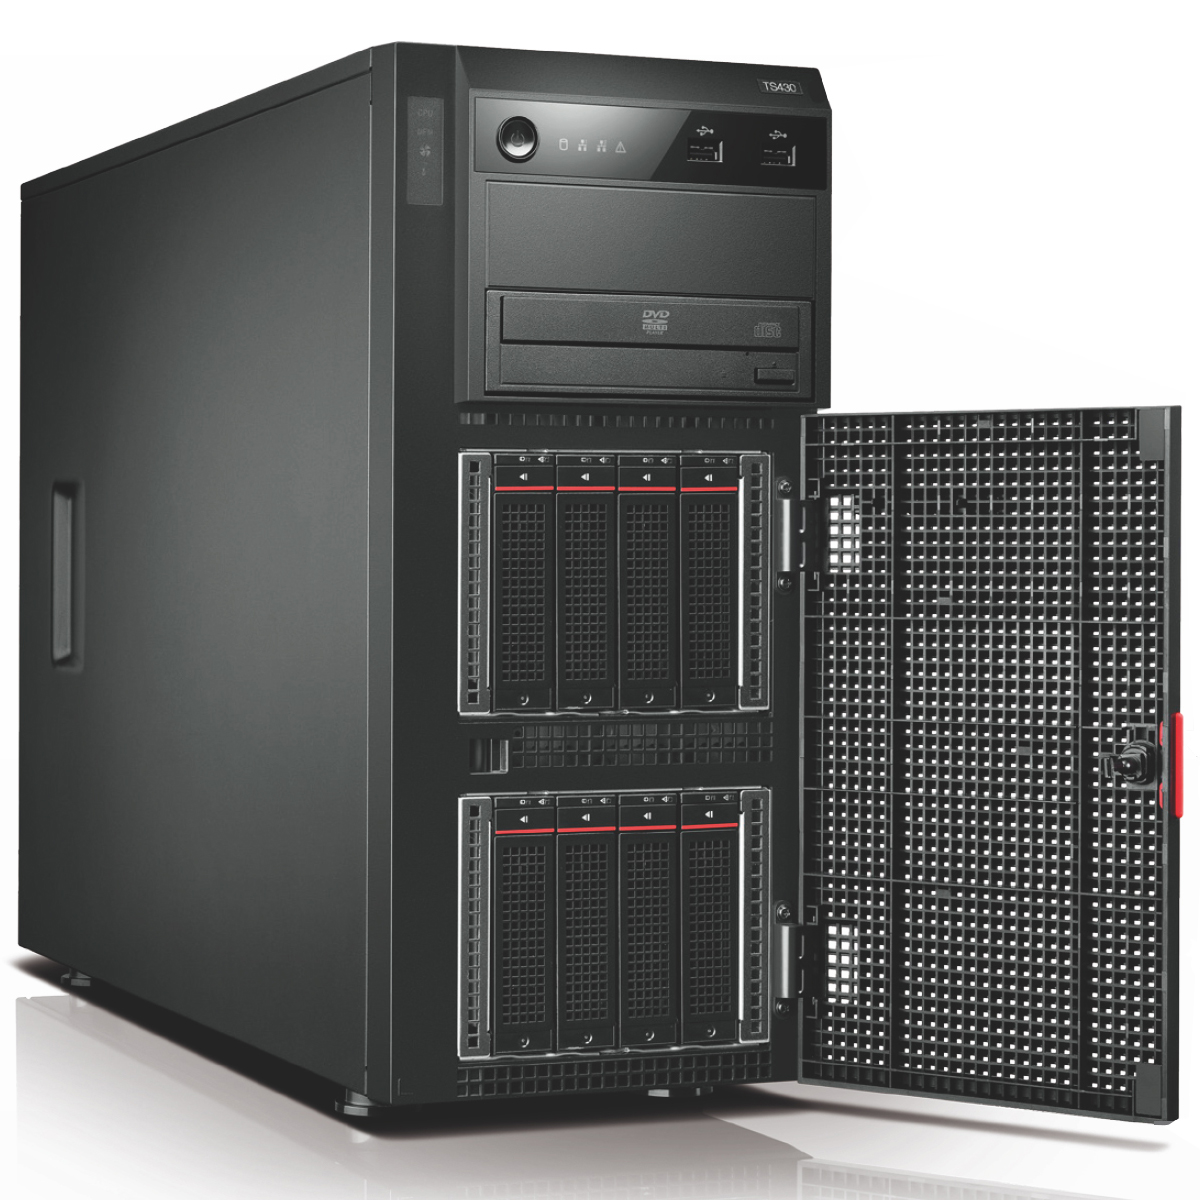 lenovo thinkserver ts430 sy31jfr sy31jfr achat vente serveur sur. Black Bedroom Furniture Sets. Home Design Ideas